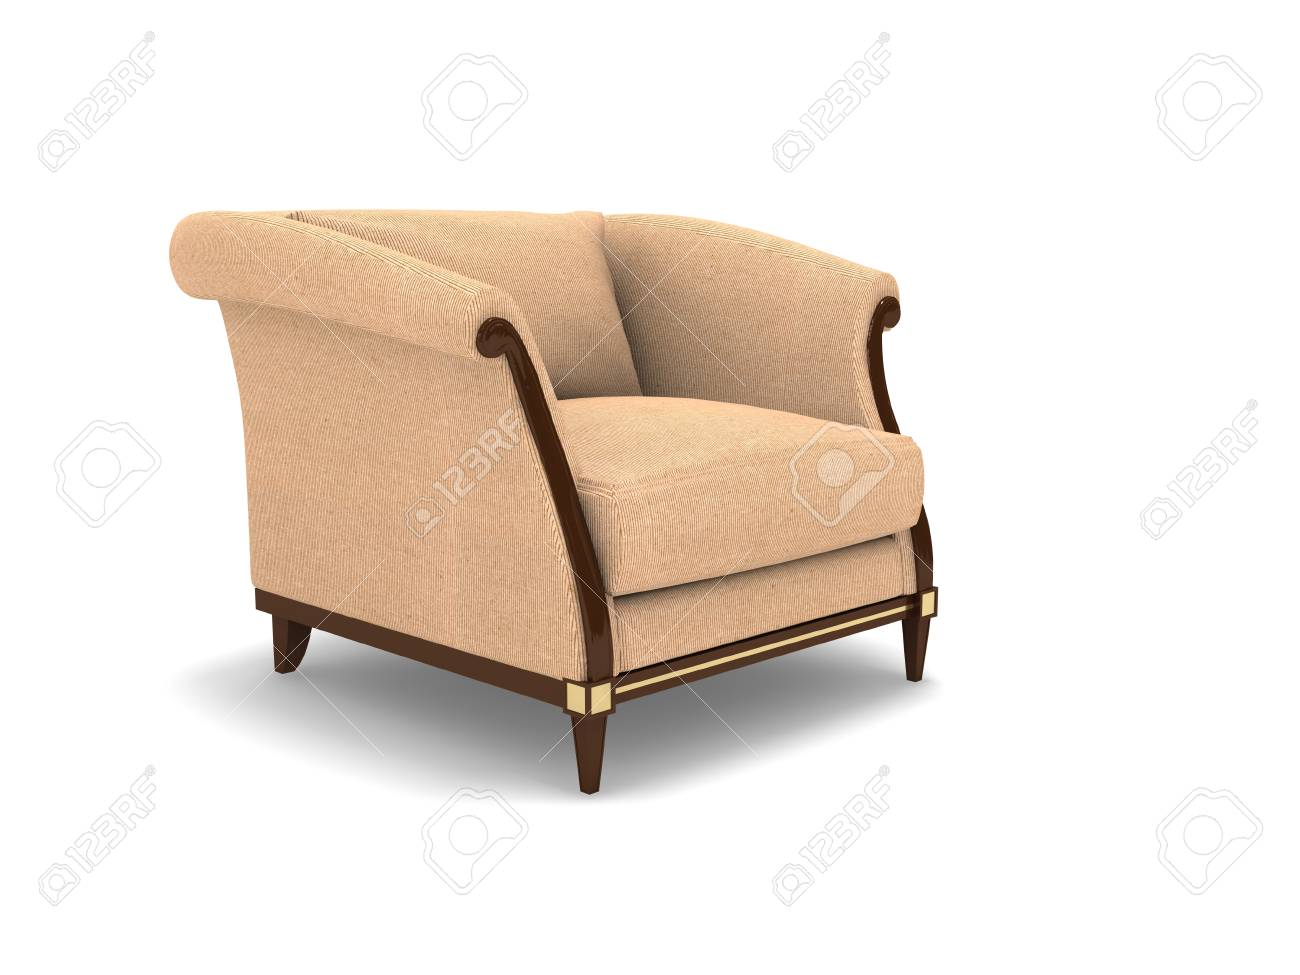 Wondrous Single Cloth 3D Sofa On White Background Pabps2019 Chair Design Images Pabps2019Com